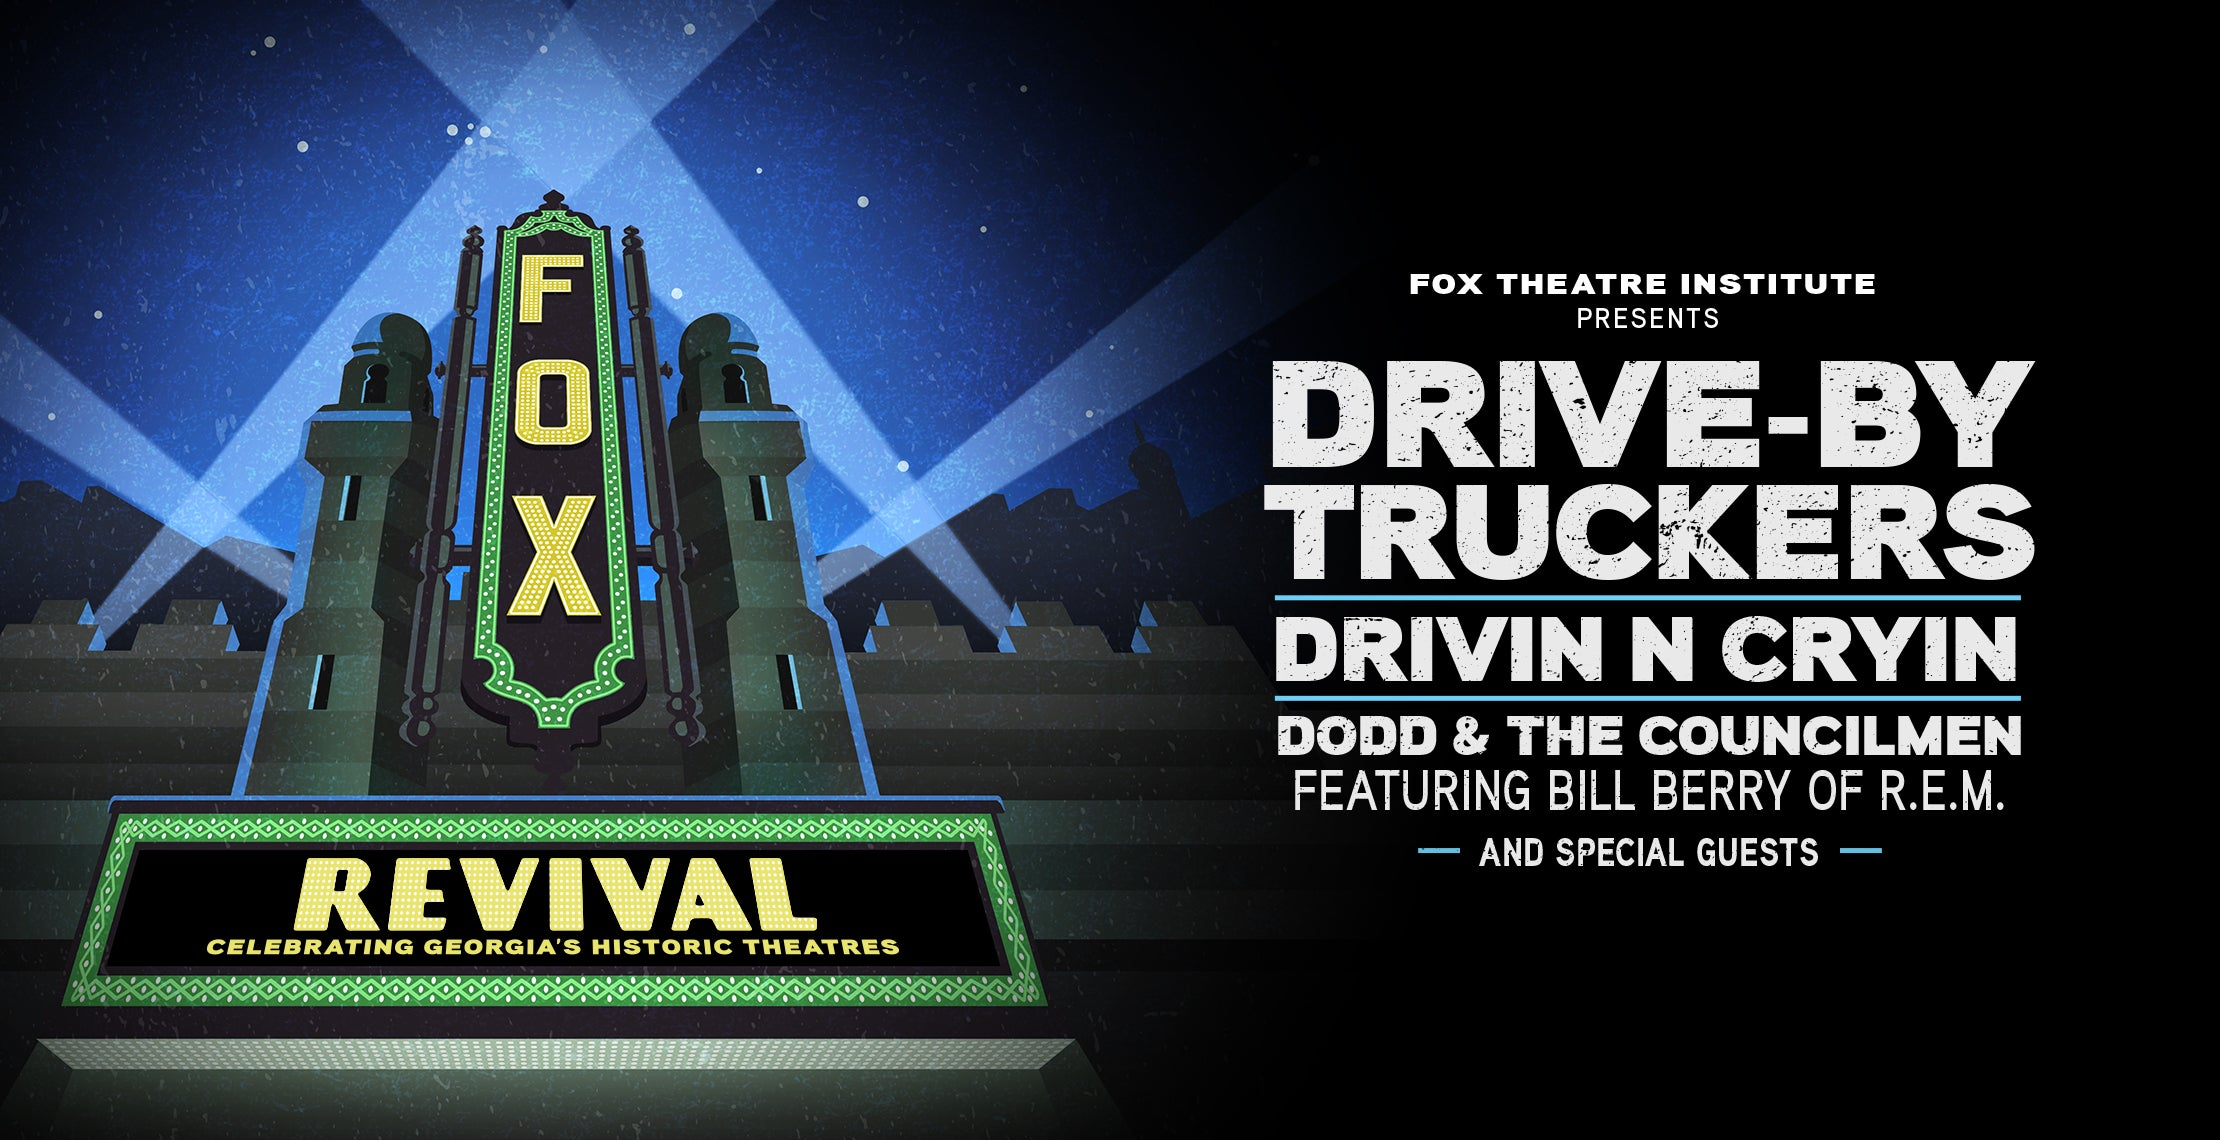 Drive-By Truckers, Drivin N Cryin, Dodd and the Councilmen and Special Guests